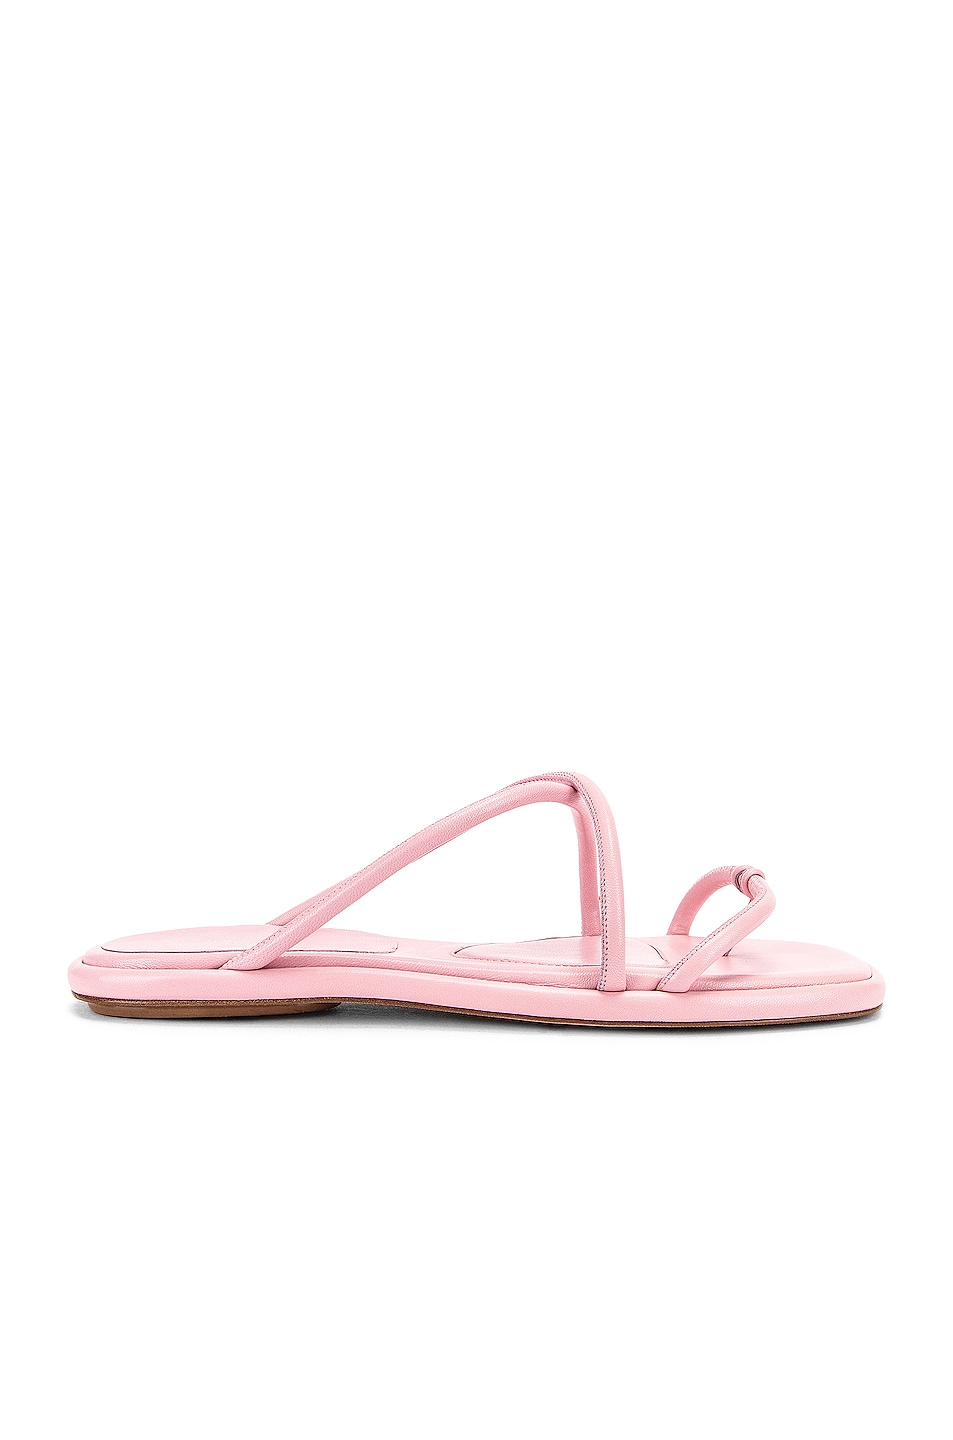 Image 1 of Rosetta Getty Leather Strappy Slides in Quartz